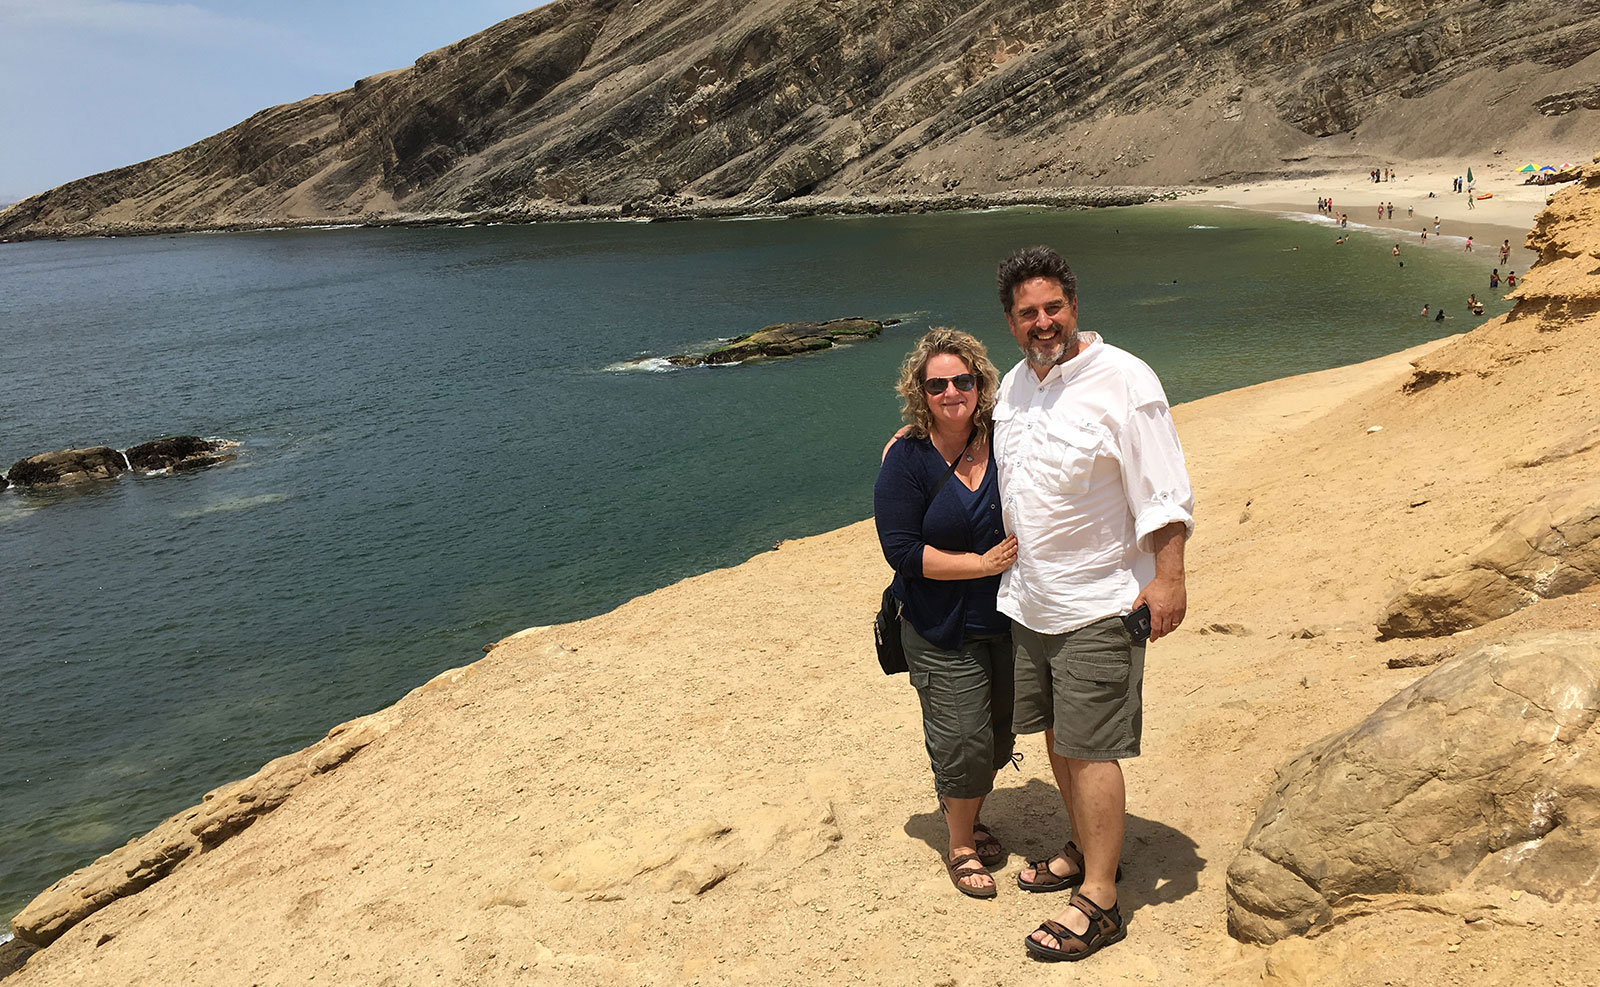 Jeff and Donna in Paracas National Park, Peru